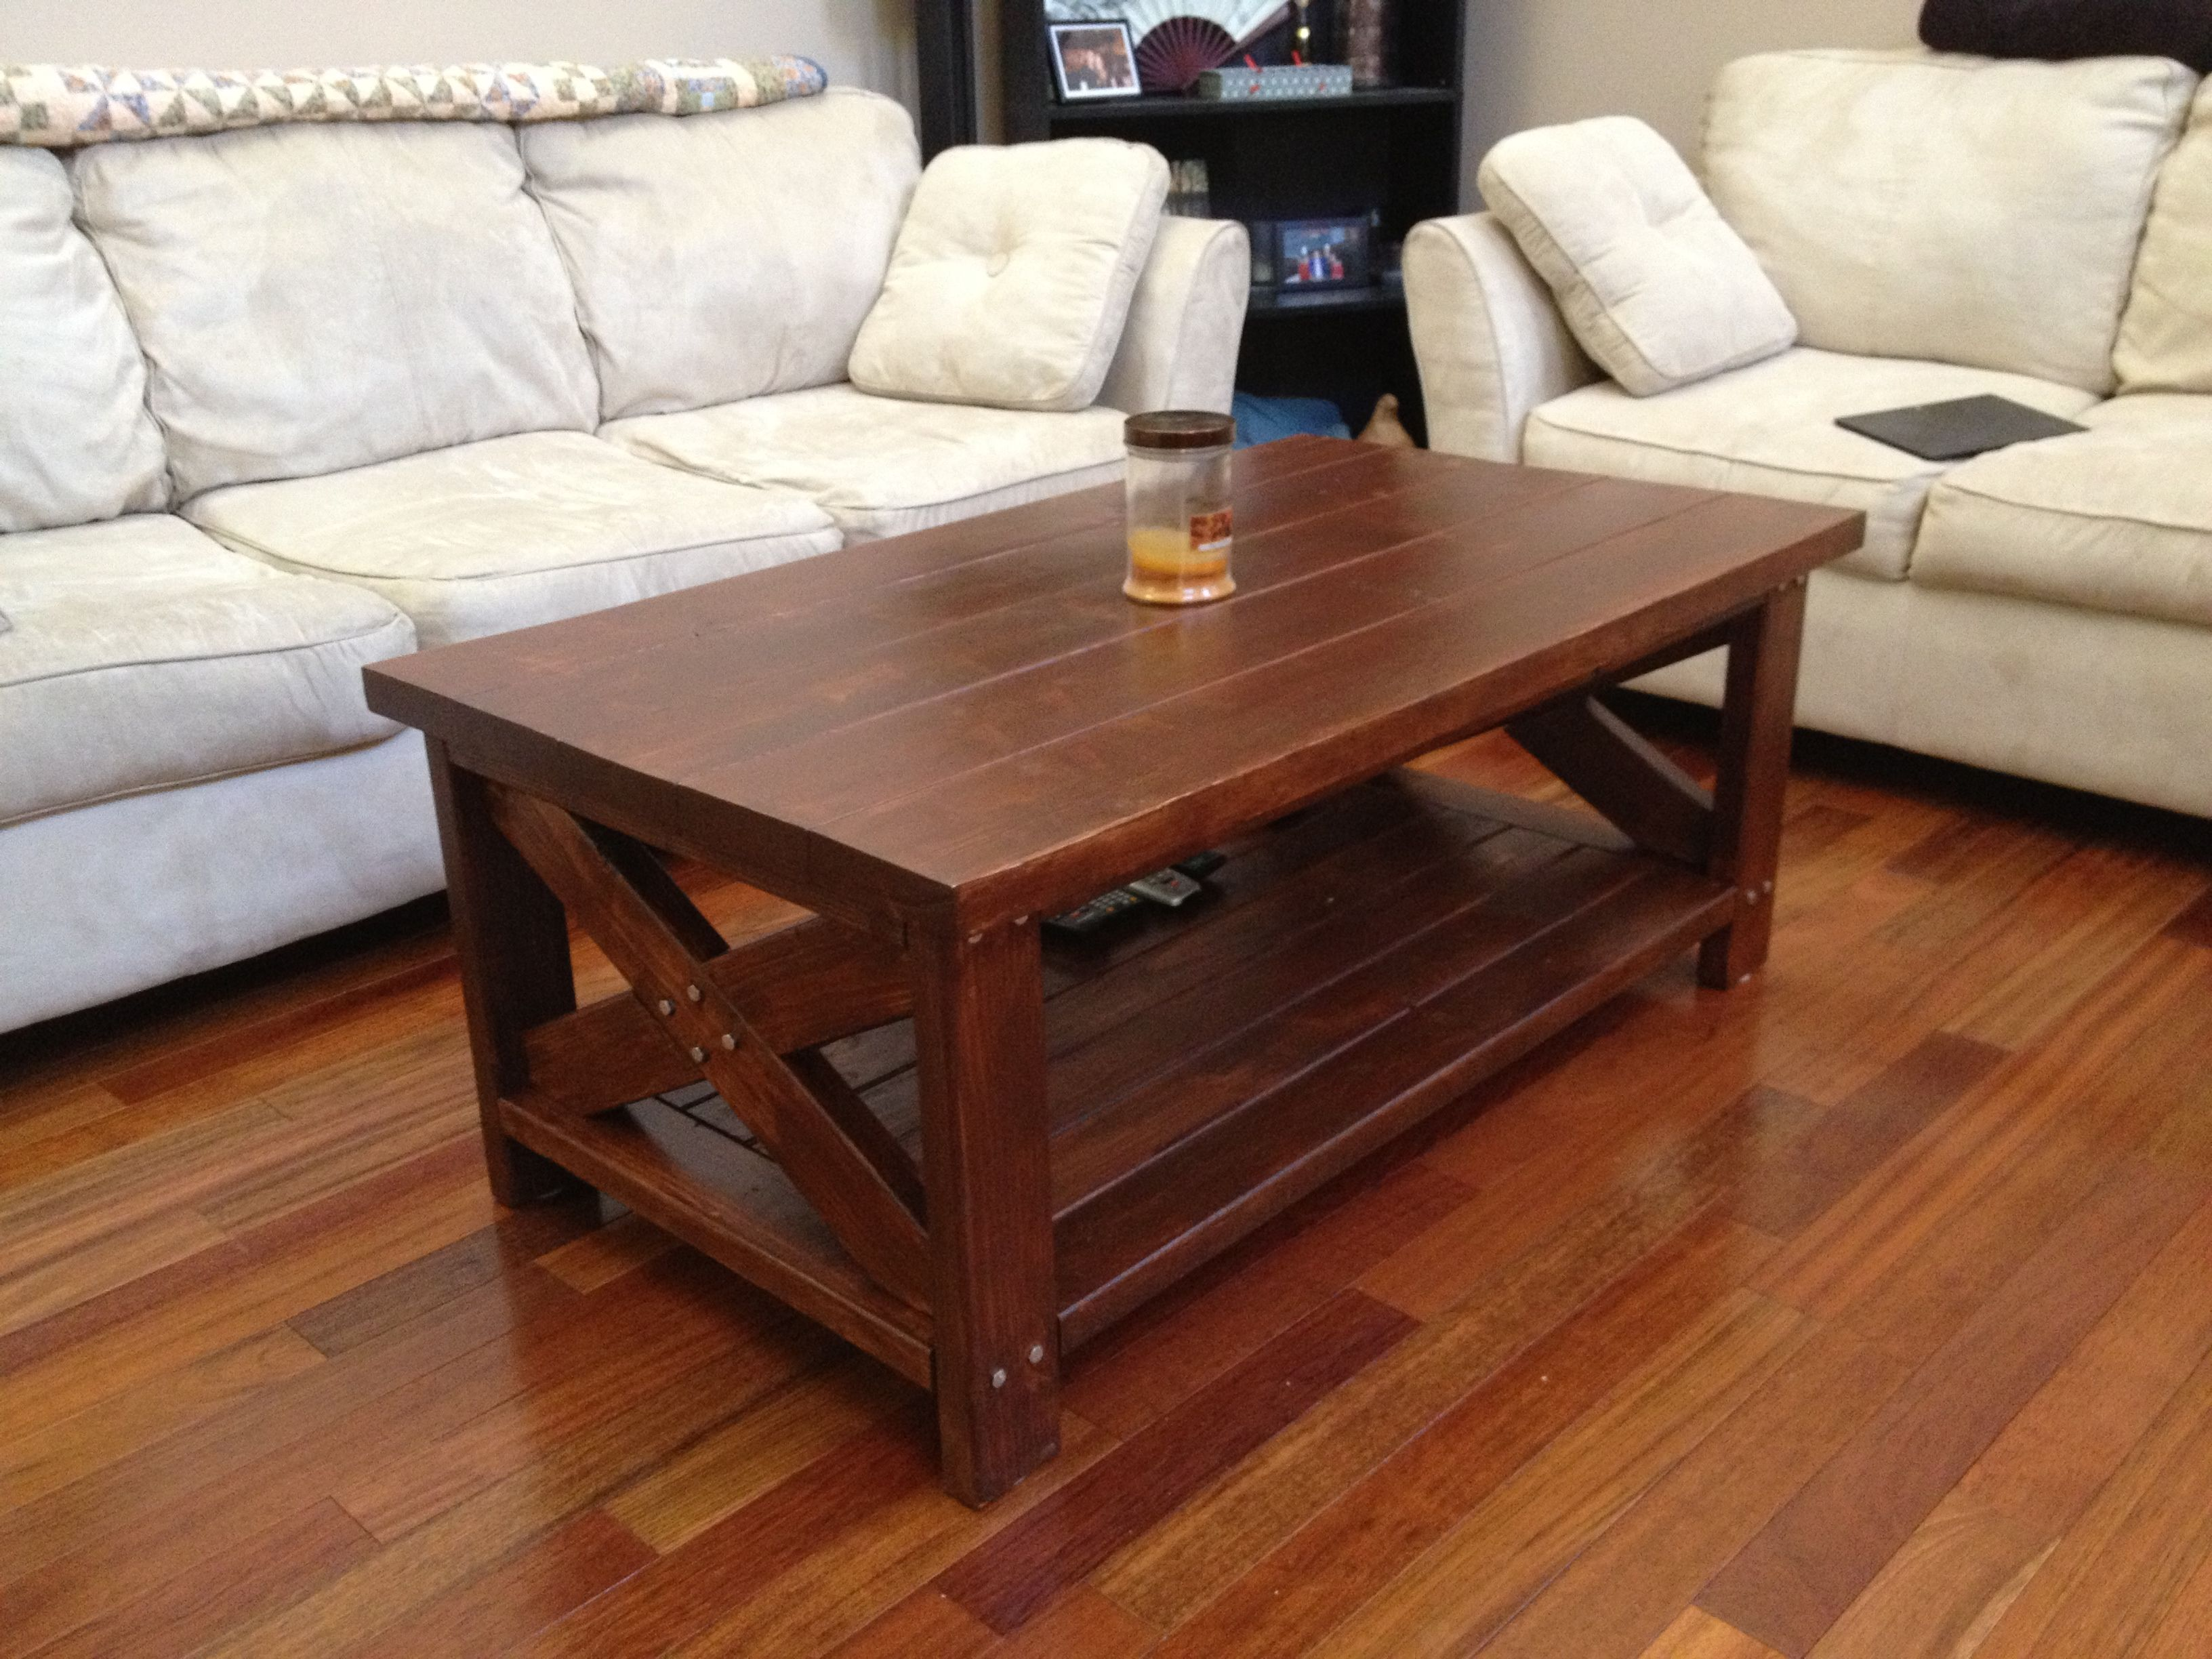 Rustic Farm Style Coffee Table, Made From 2x4u0027s And 2x6u0027s.  2x4engineering.com